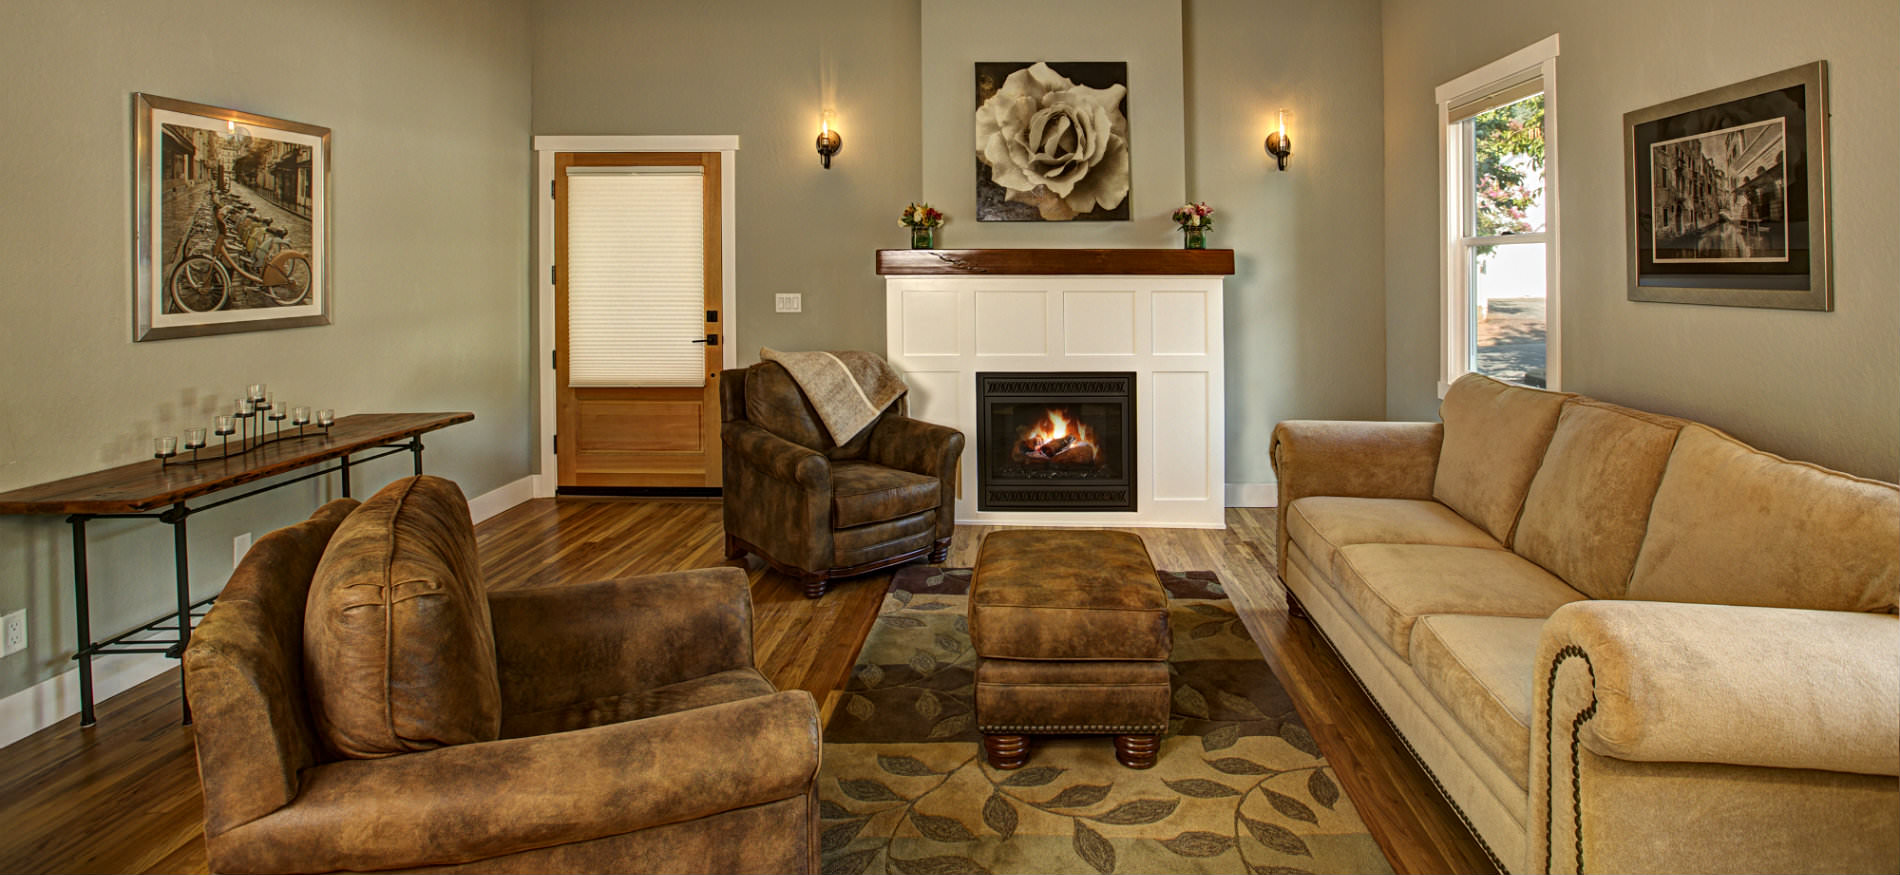 Sage green living room with wood floors a couch with two chairs and a warm fire in the fireplace